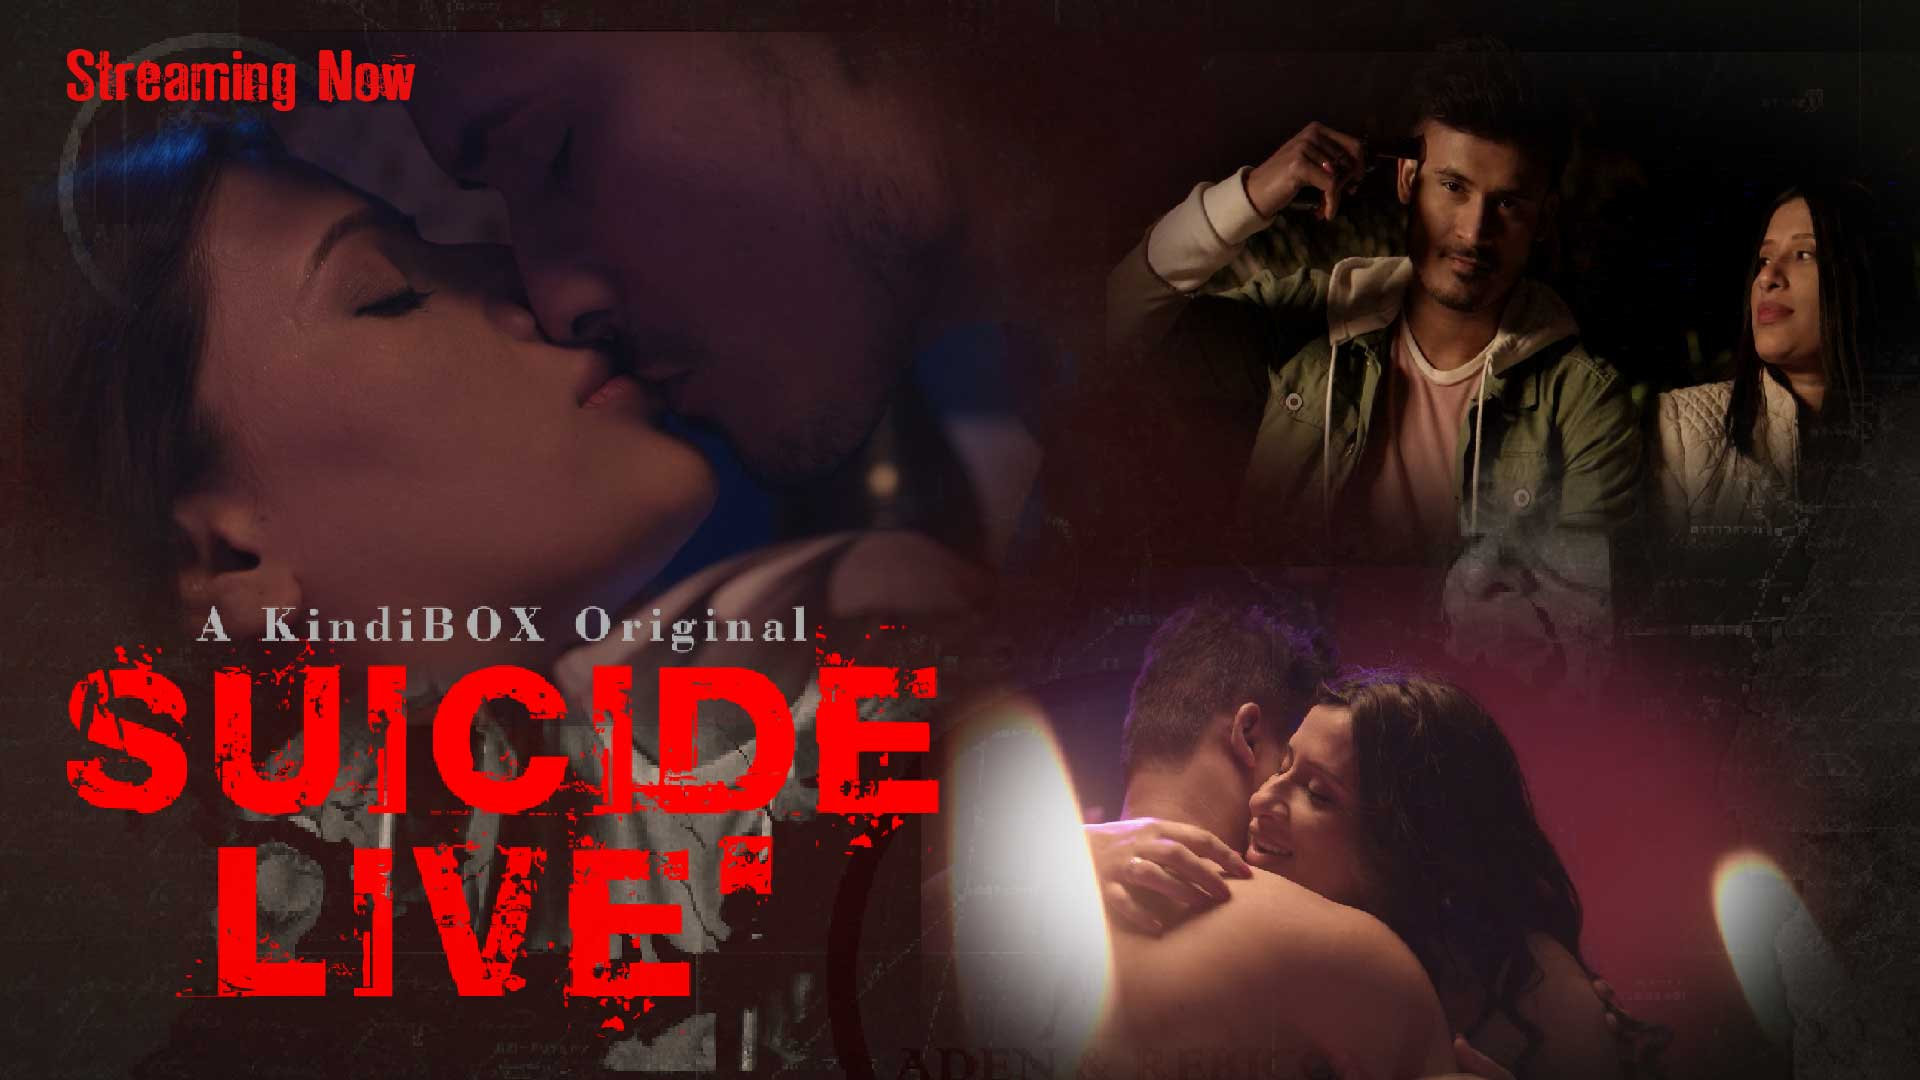 18+ Suicide Live 2020 S01EP02 Hindi KindiBOX Original Web Series 720p HDRip 230MB x264 AAC